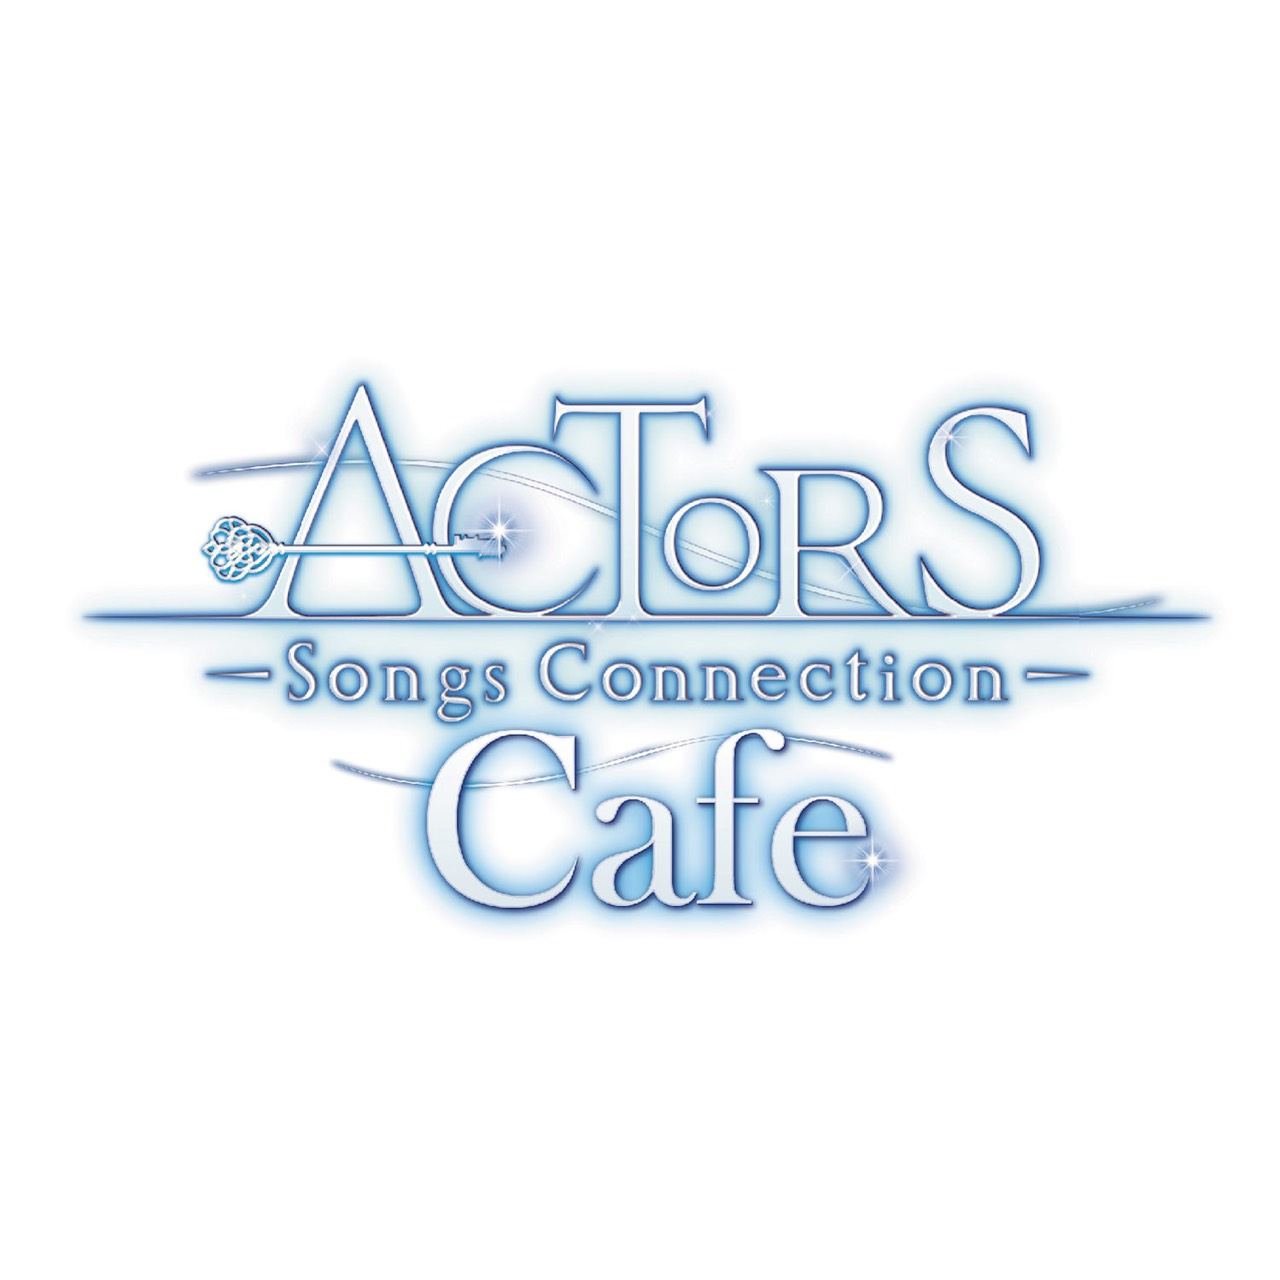 【1月23日】ACTORS cafe